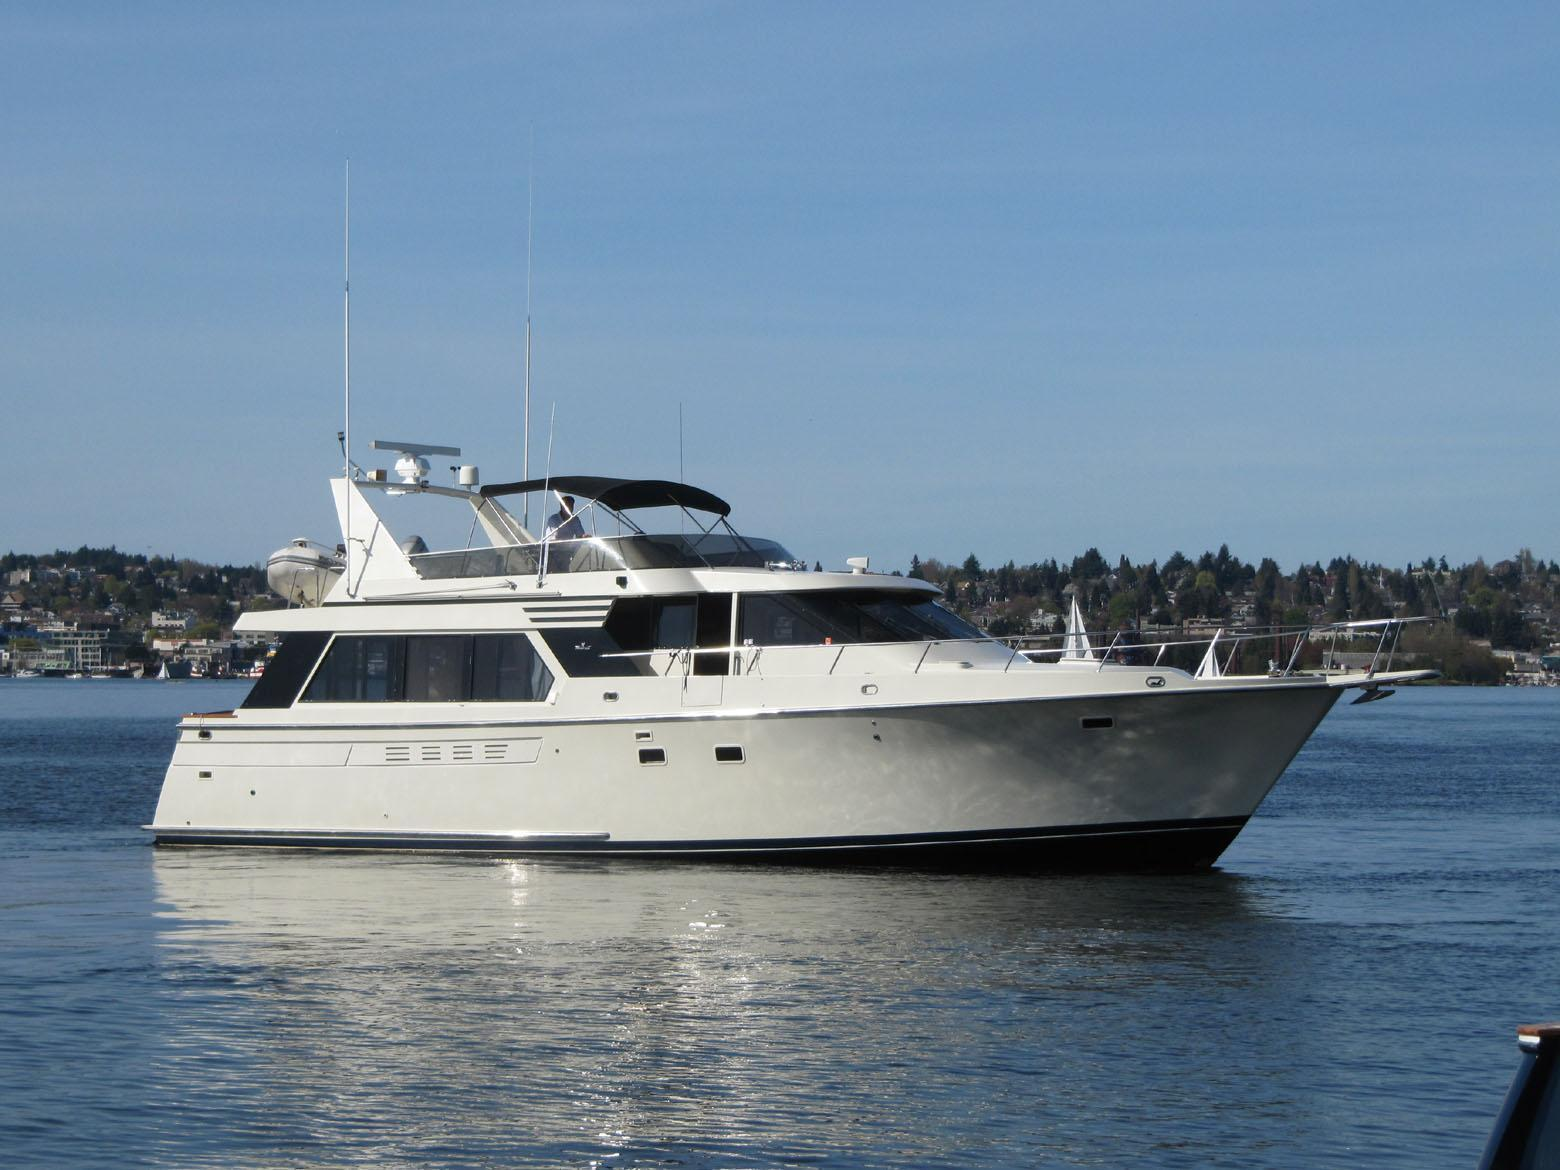 Tollycraft 53 Pilothouse, Seattle